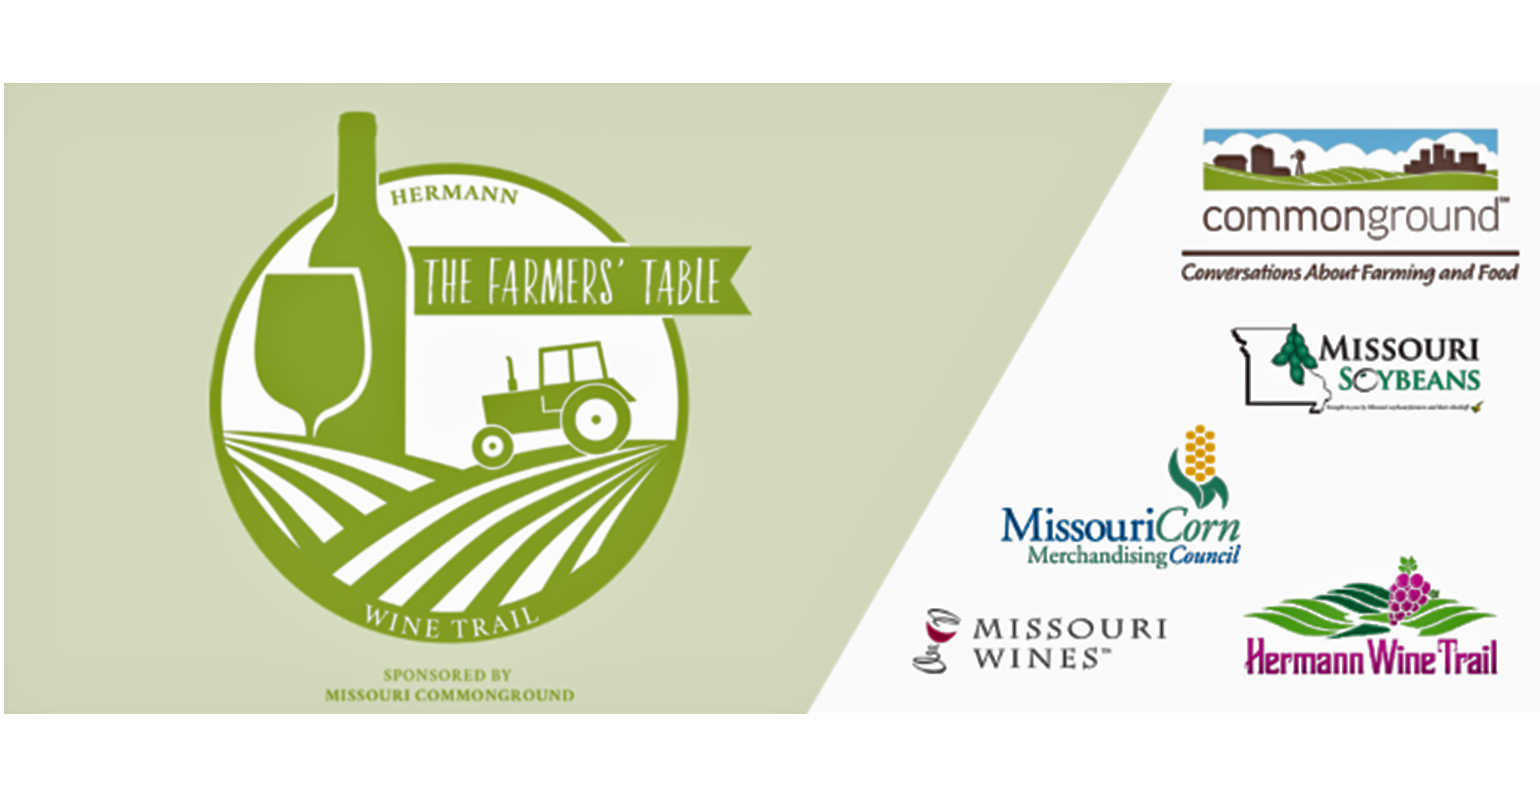 graphic of The Farmers' Table Wine Trail and sponsor logos